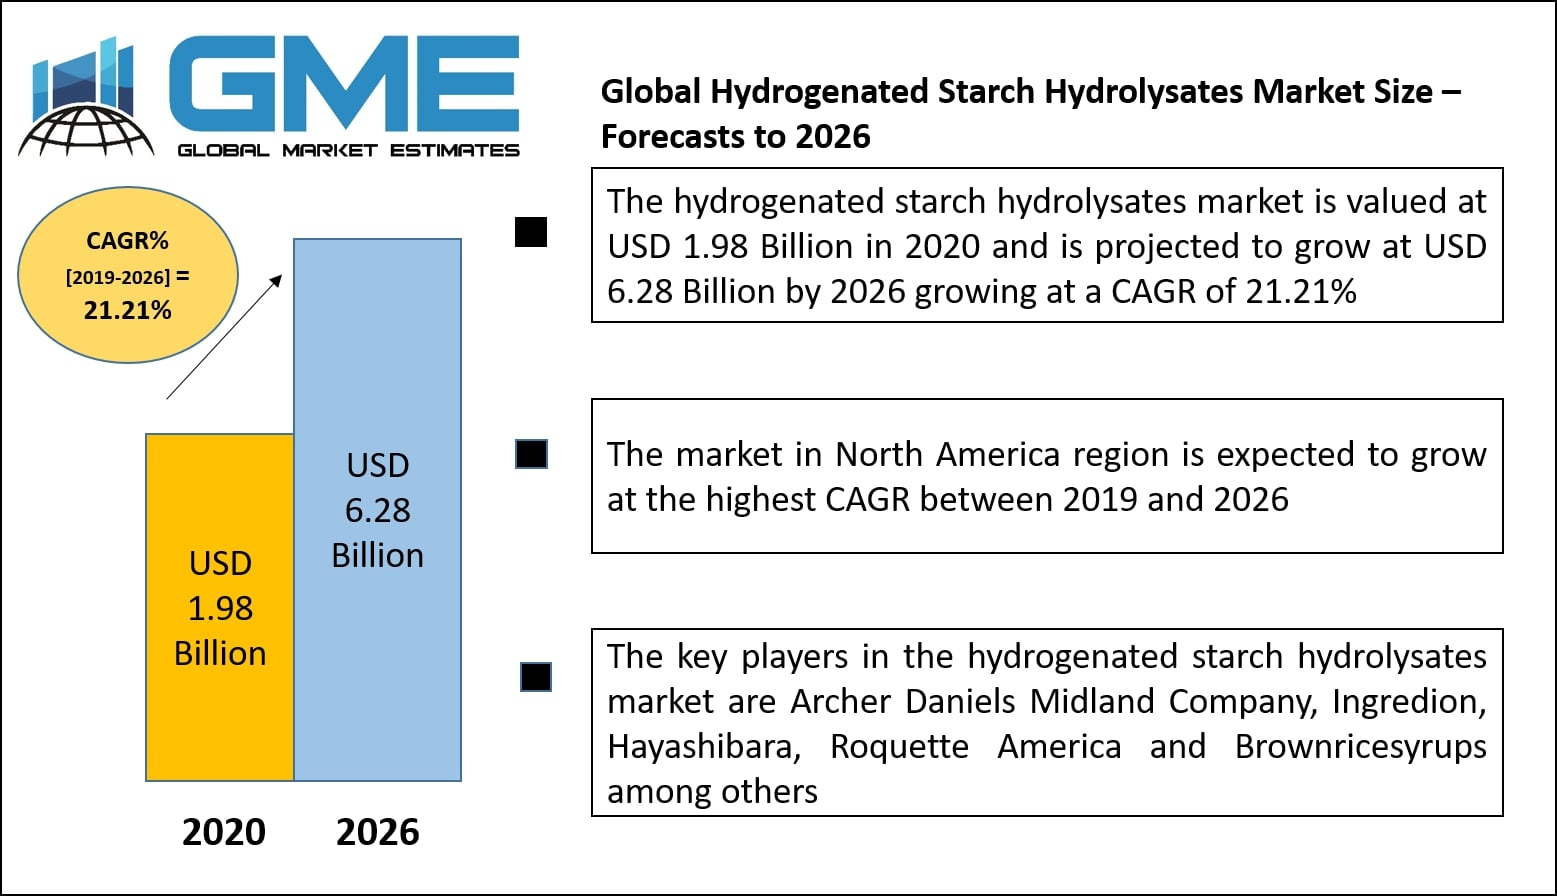 Global Hydrogenated Starch Hydrolysates Market Size – Forecasts to 2026